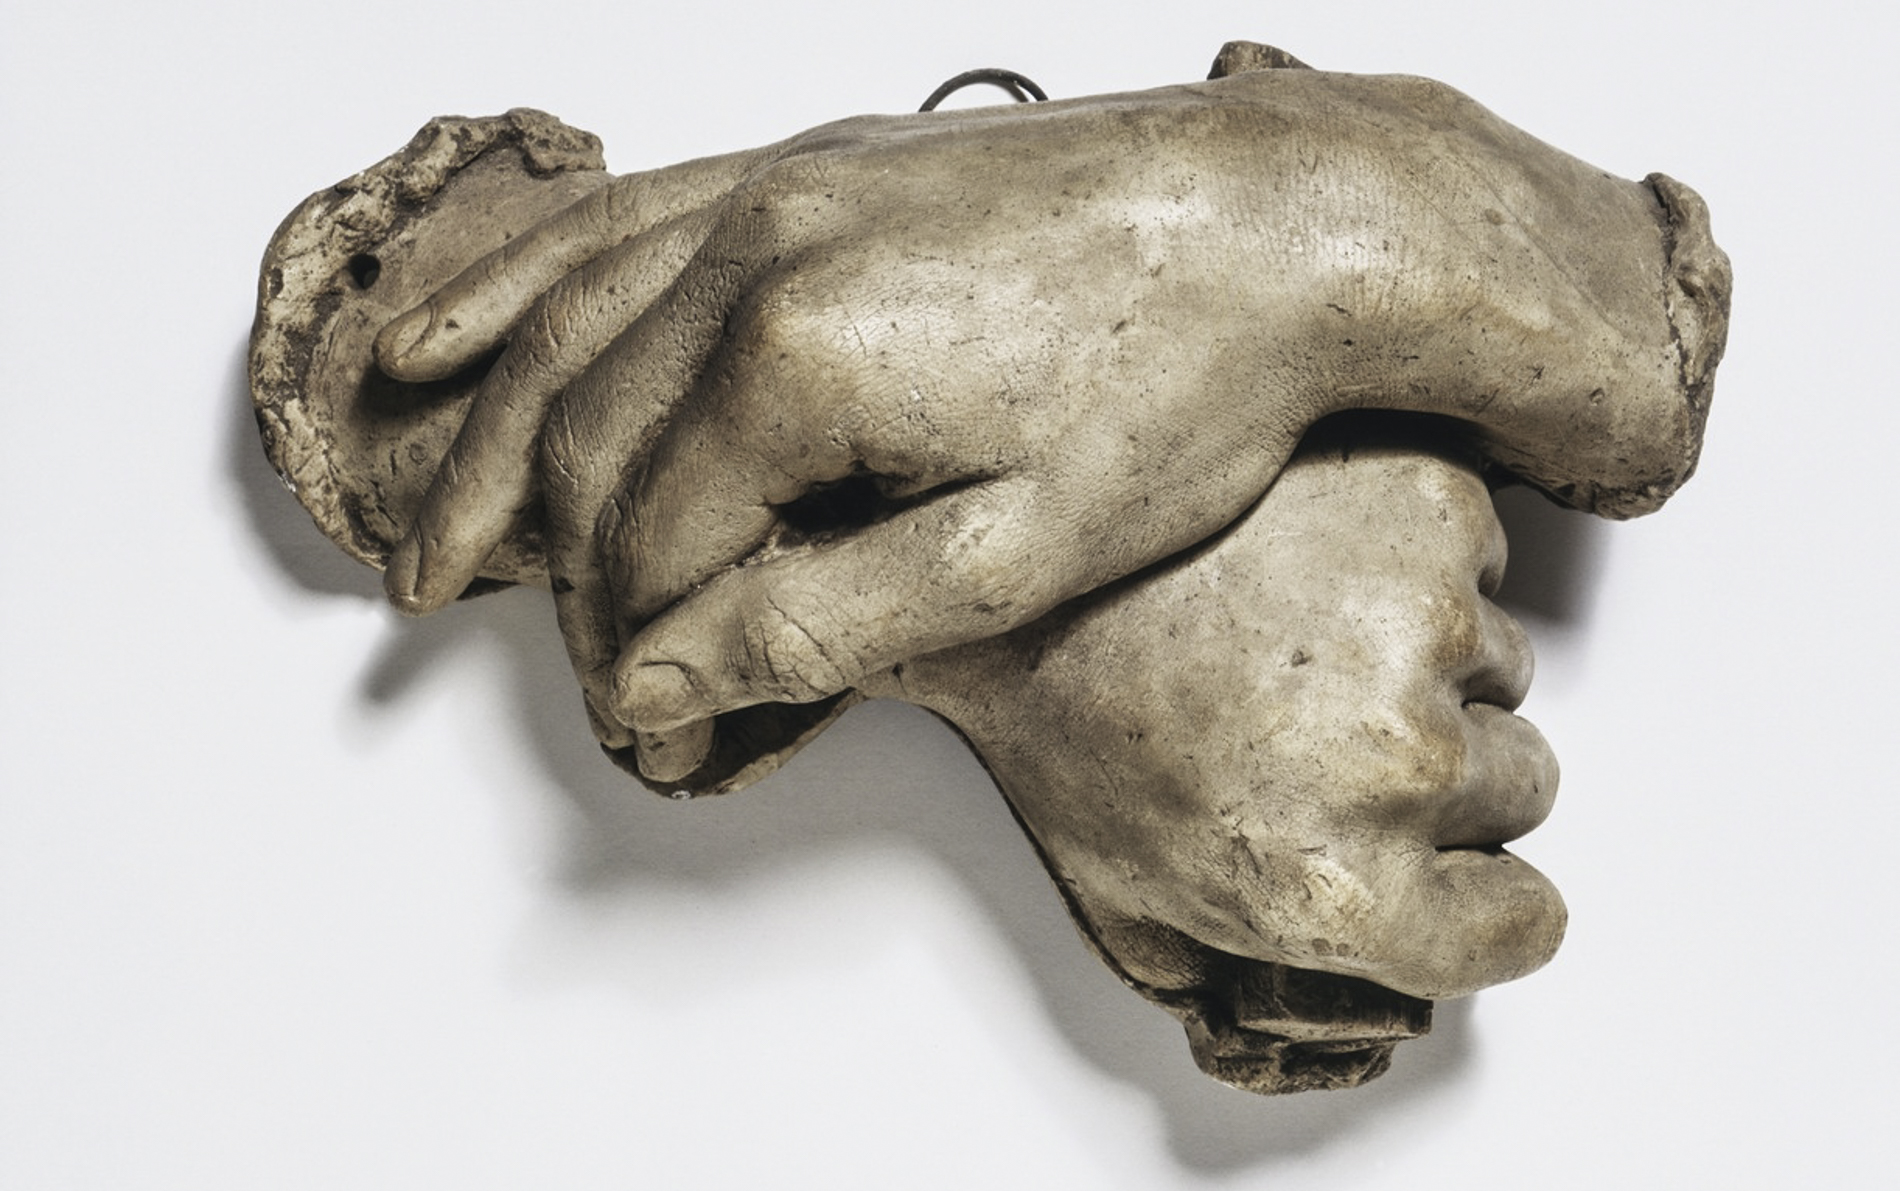 Plaster hands of Count Camillo Cavour ca. 1858 - ca. 1859 (made) © Victoria and Albert Museum, London. Image Courtesy of The Victoria & Albert Museum